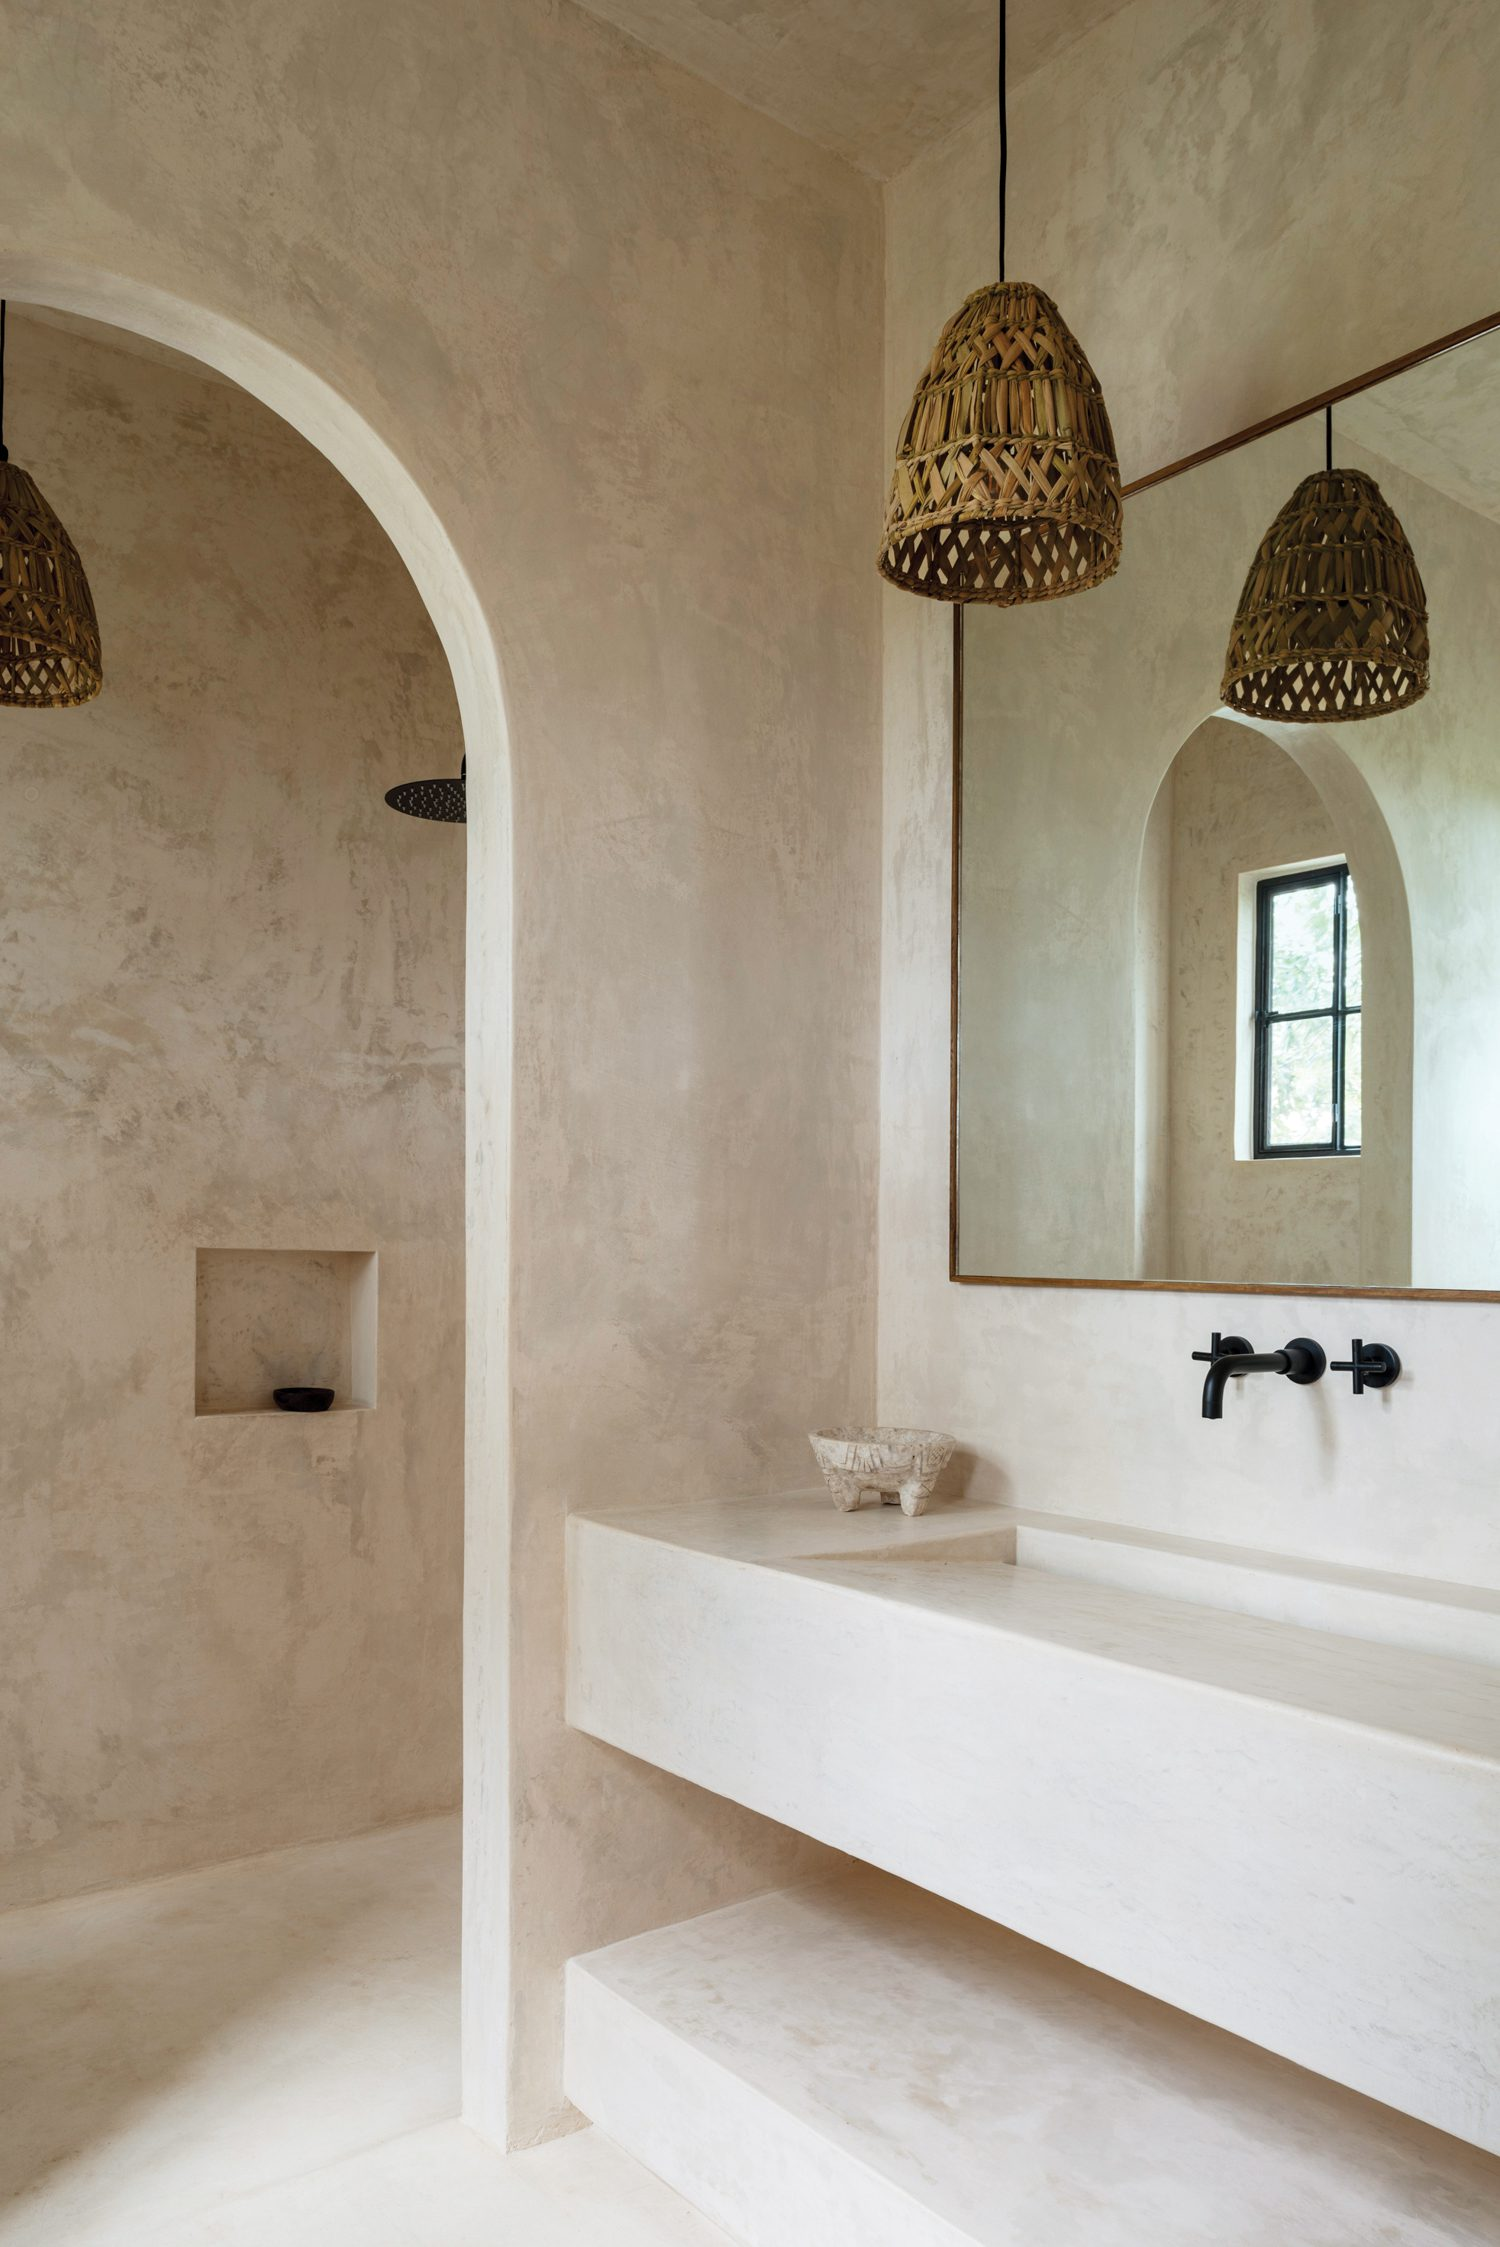 The bathroom walls and integral vanity are also plastered in chukum stucco; the mortar on the countertop is a classical design sourced from a Mayan village.